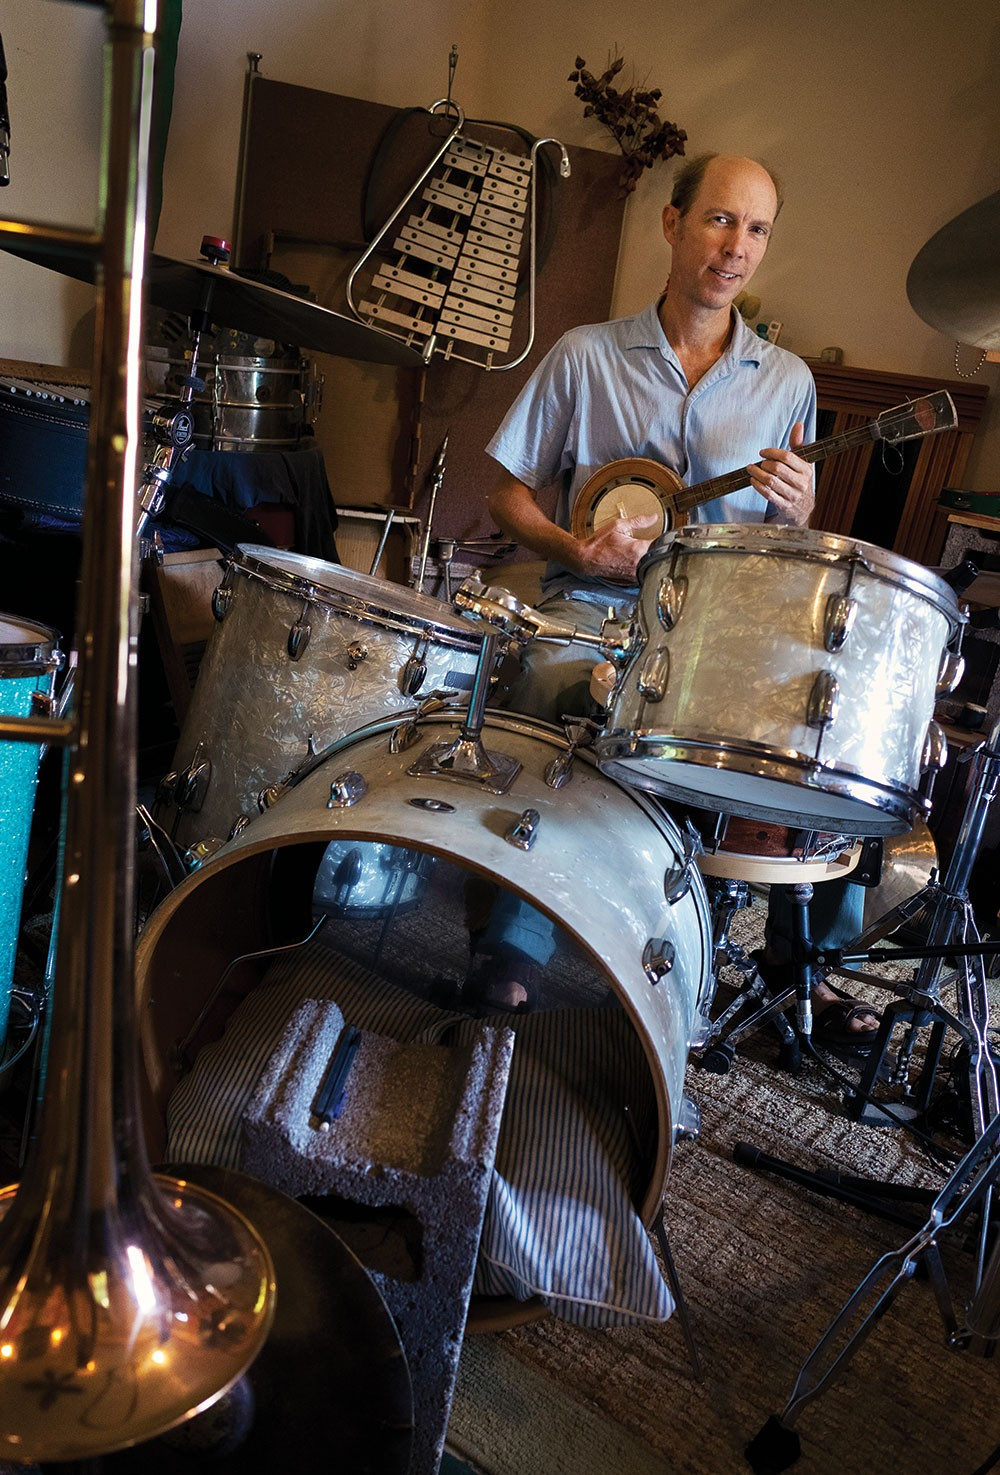 Dean Jones in his No Parking Studio. Citing a lack of minority nominees in their category, the Rosendale children's musician and his band, Dog on Fleas, asked the Recording Academy to remove them from the list of the 2020 Grammy nominees. - PHOTO BY FIONN REILLY